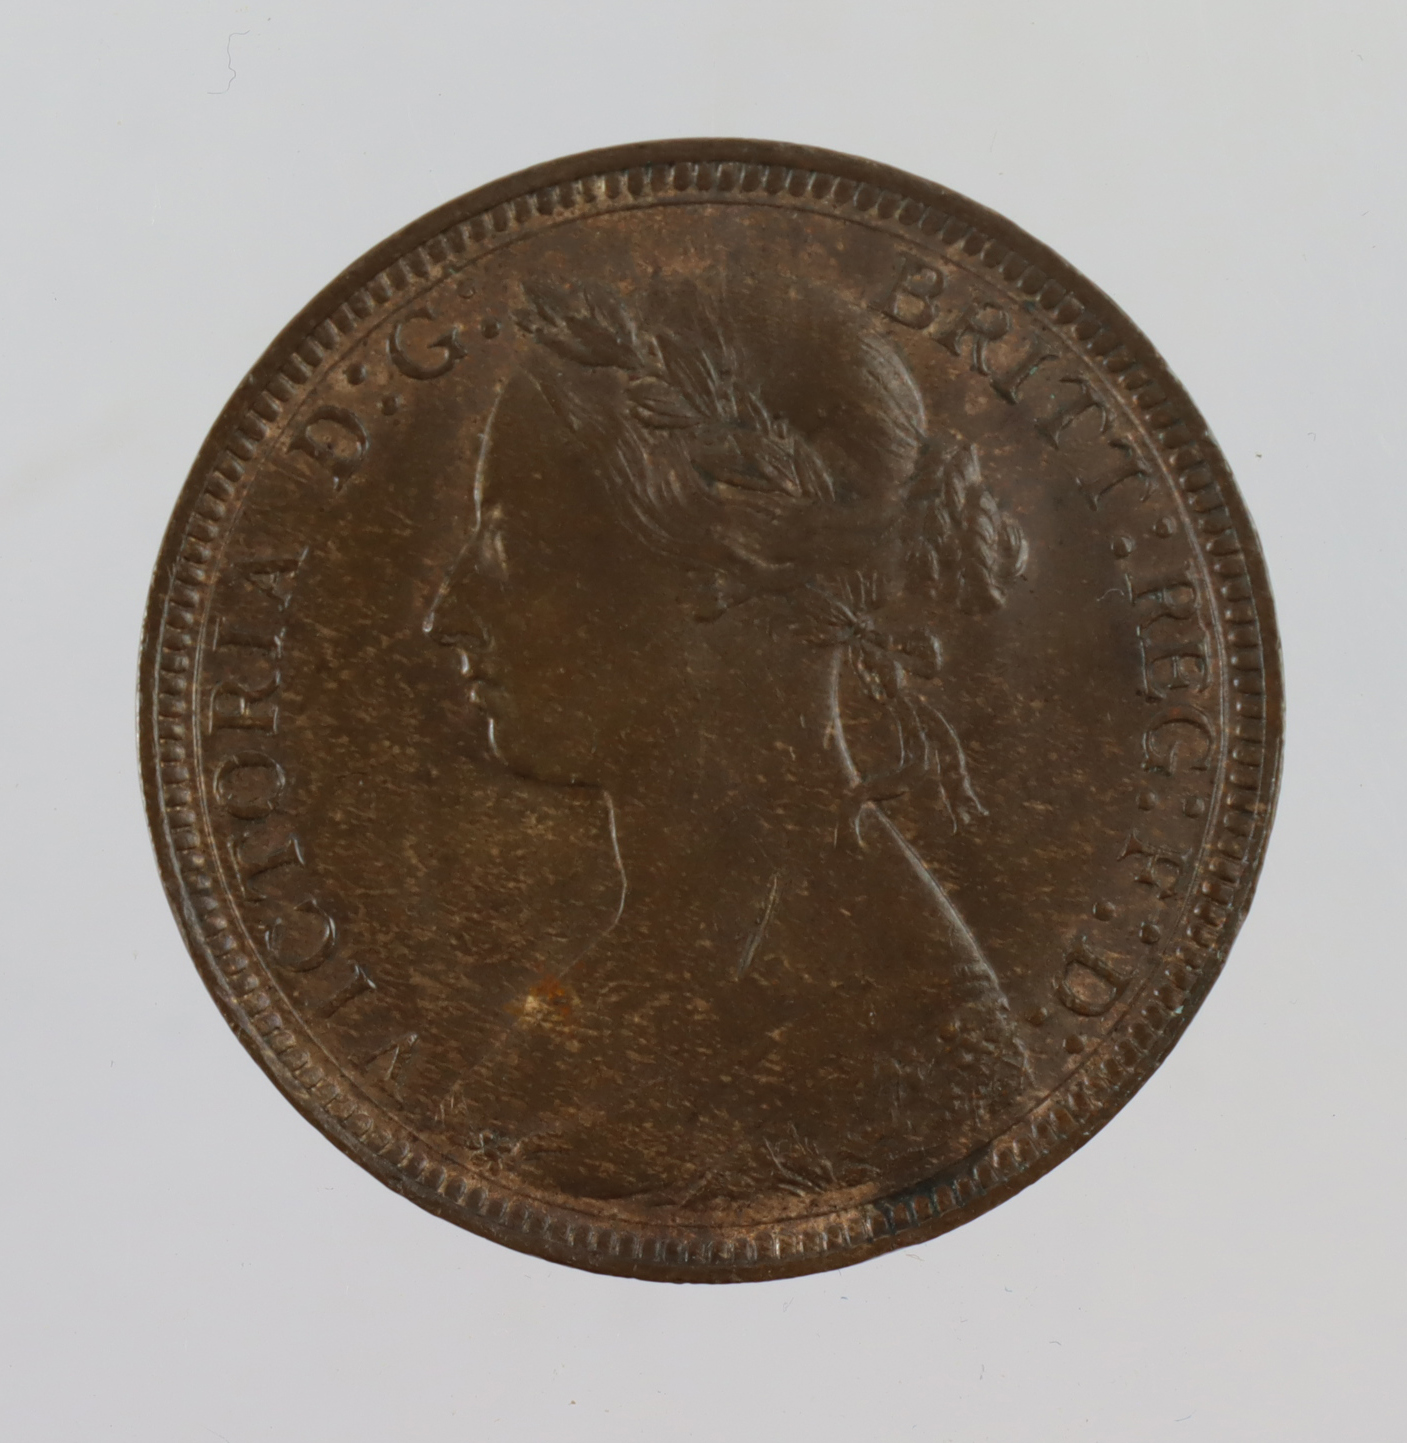 Halfpenny 1885 GEF trace lustre, small scratch obv.